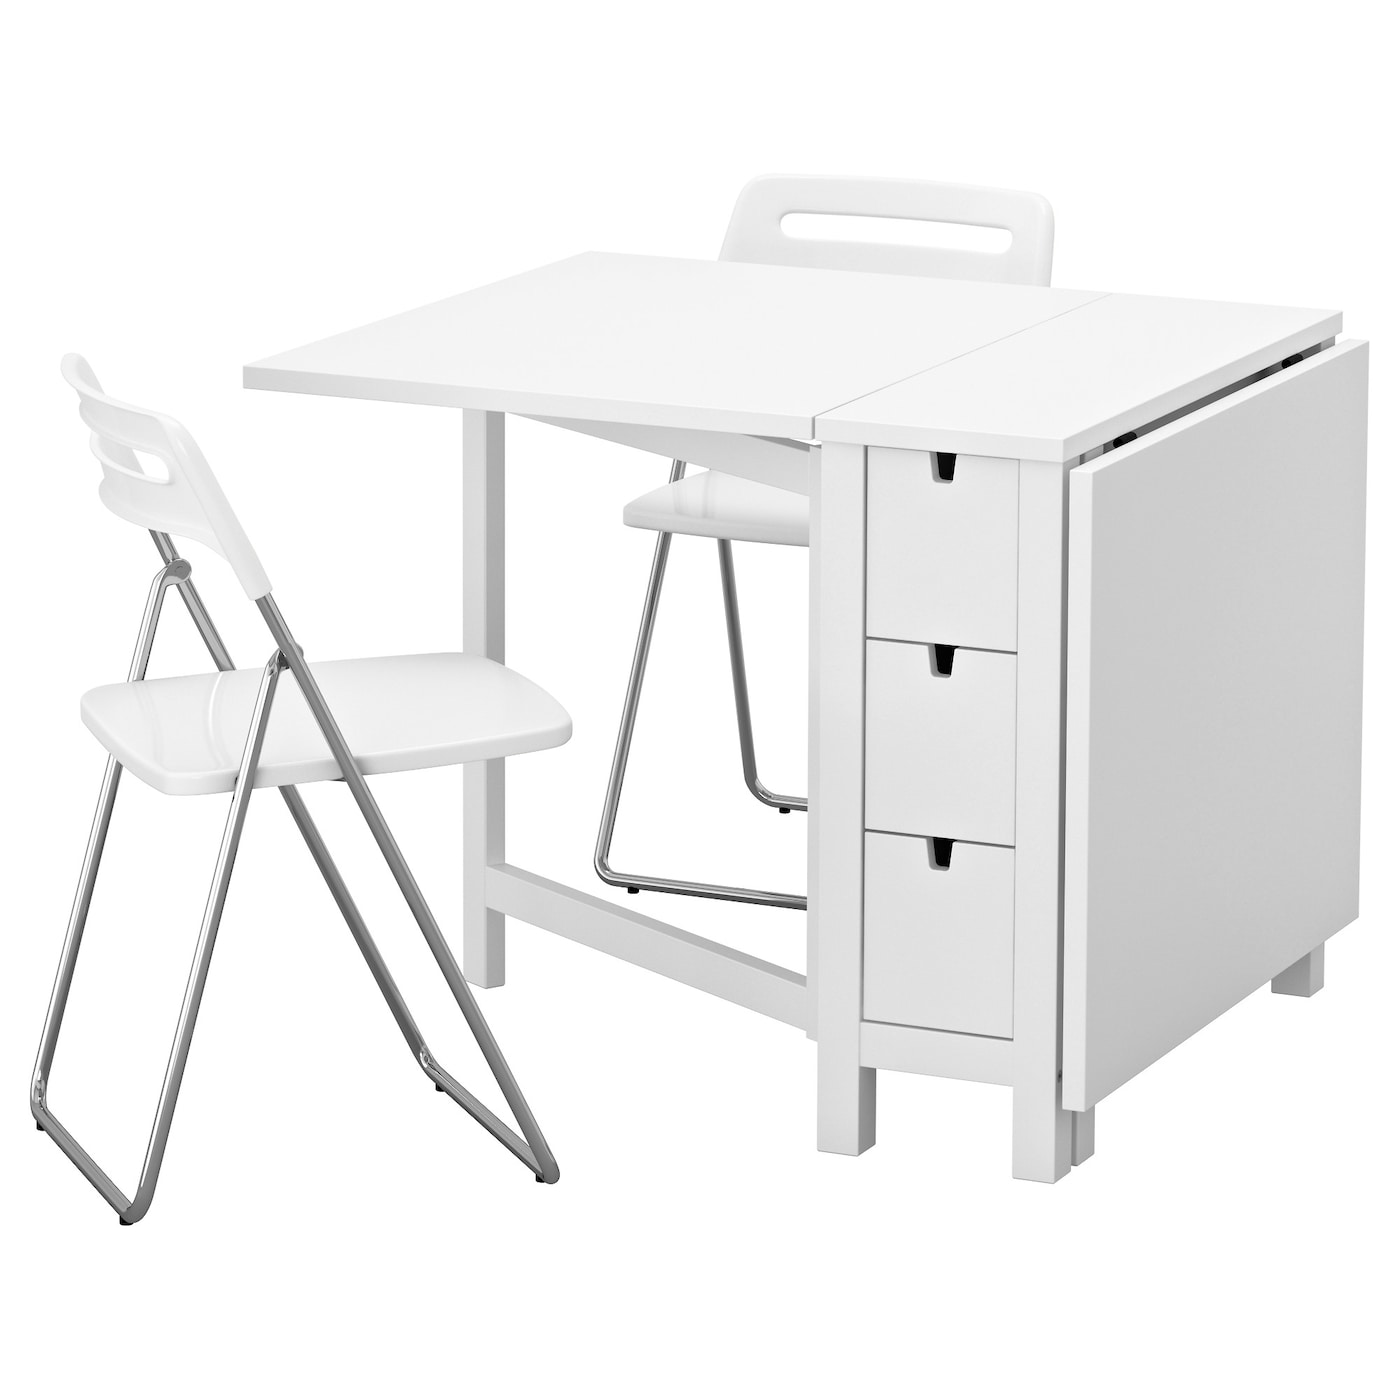 Nisse Norden Table Folding Chairs White Ikea Set